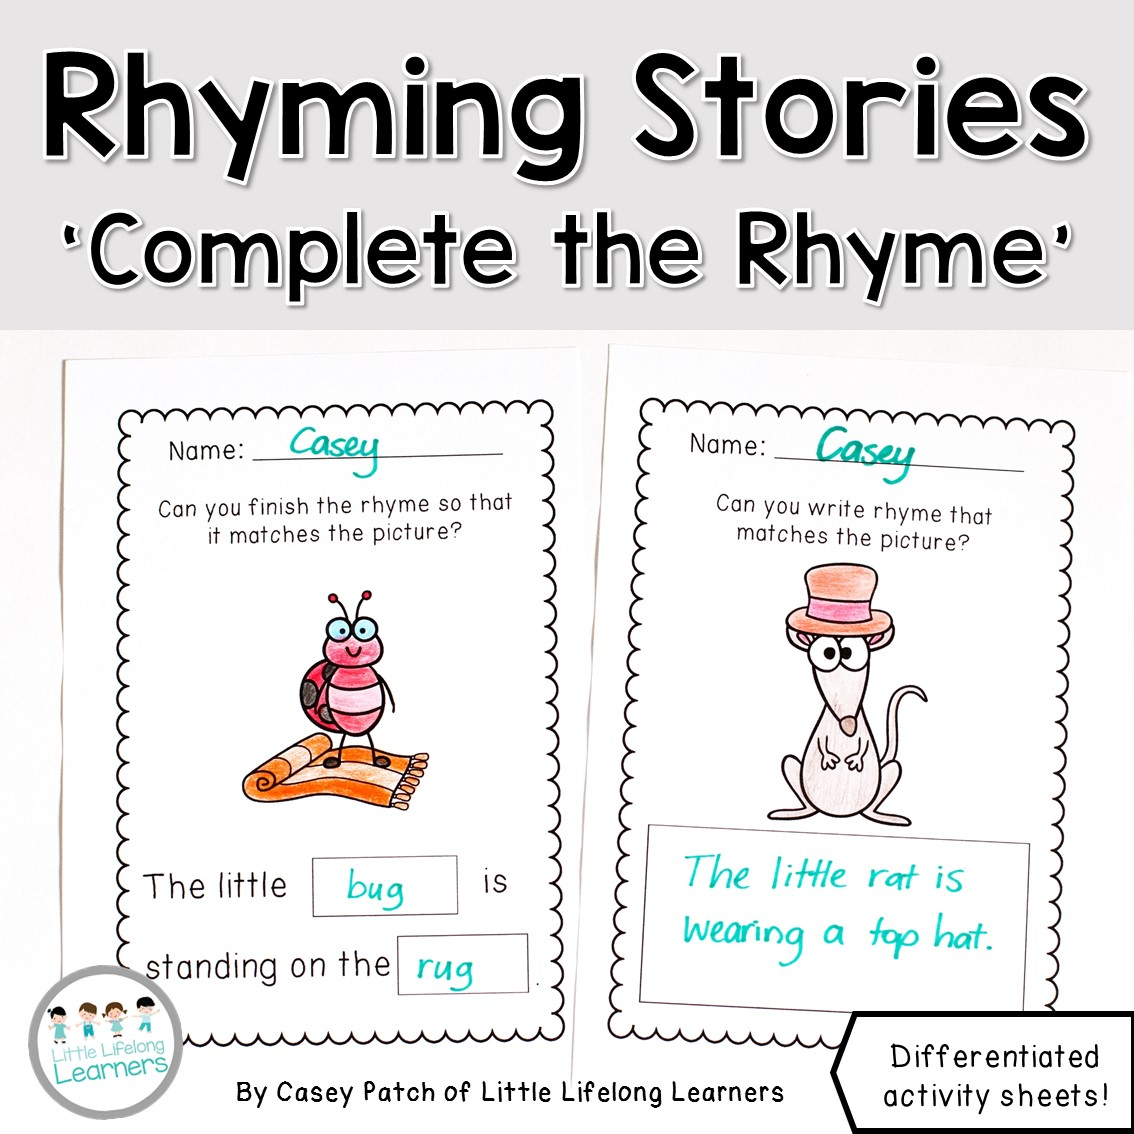 Rhyming Stories